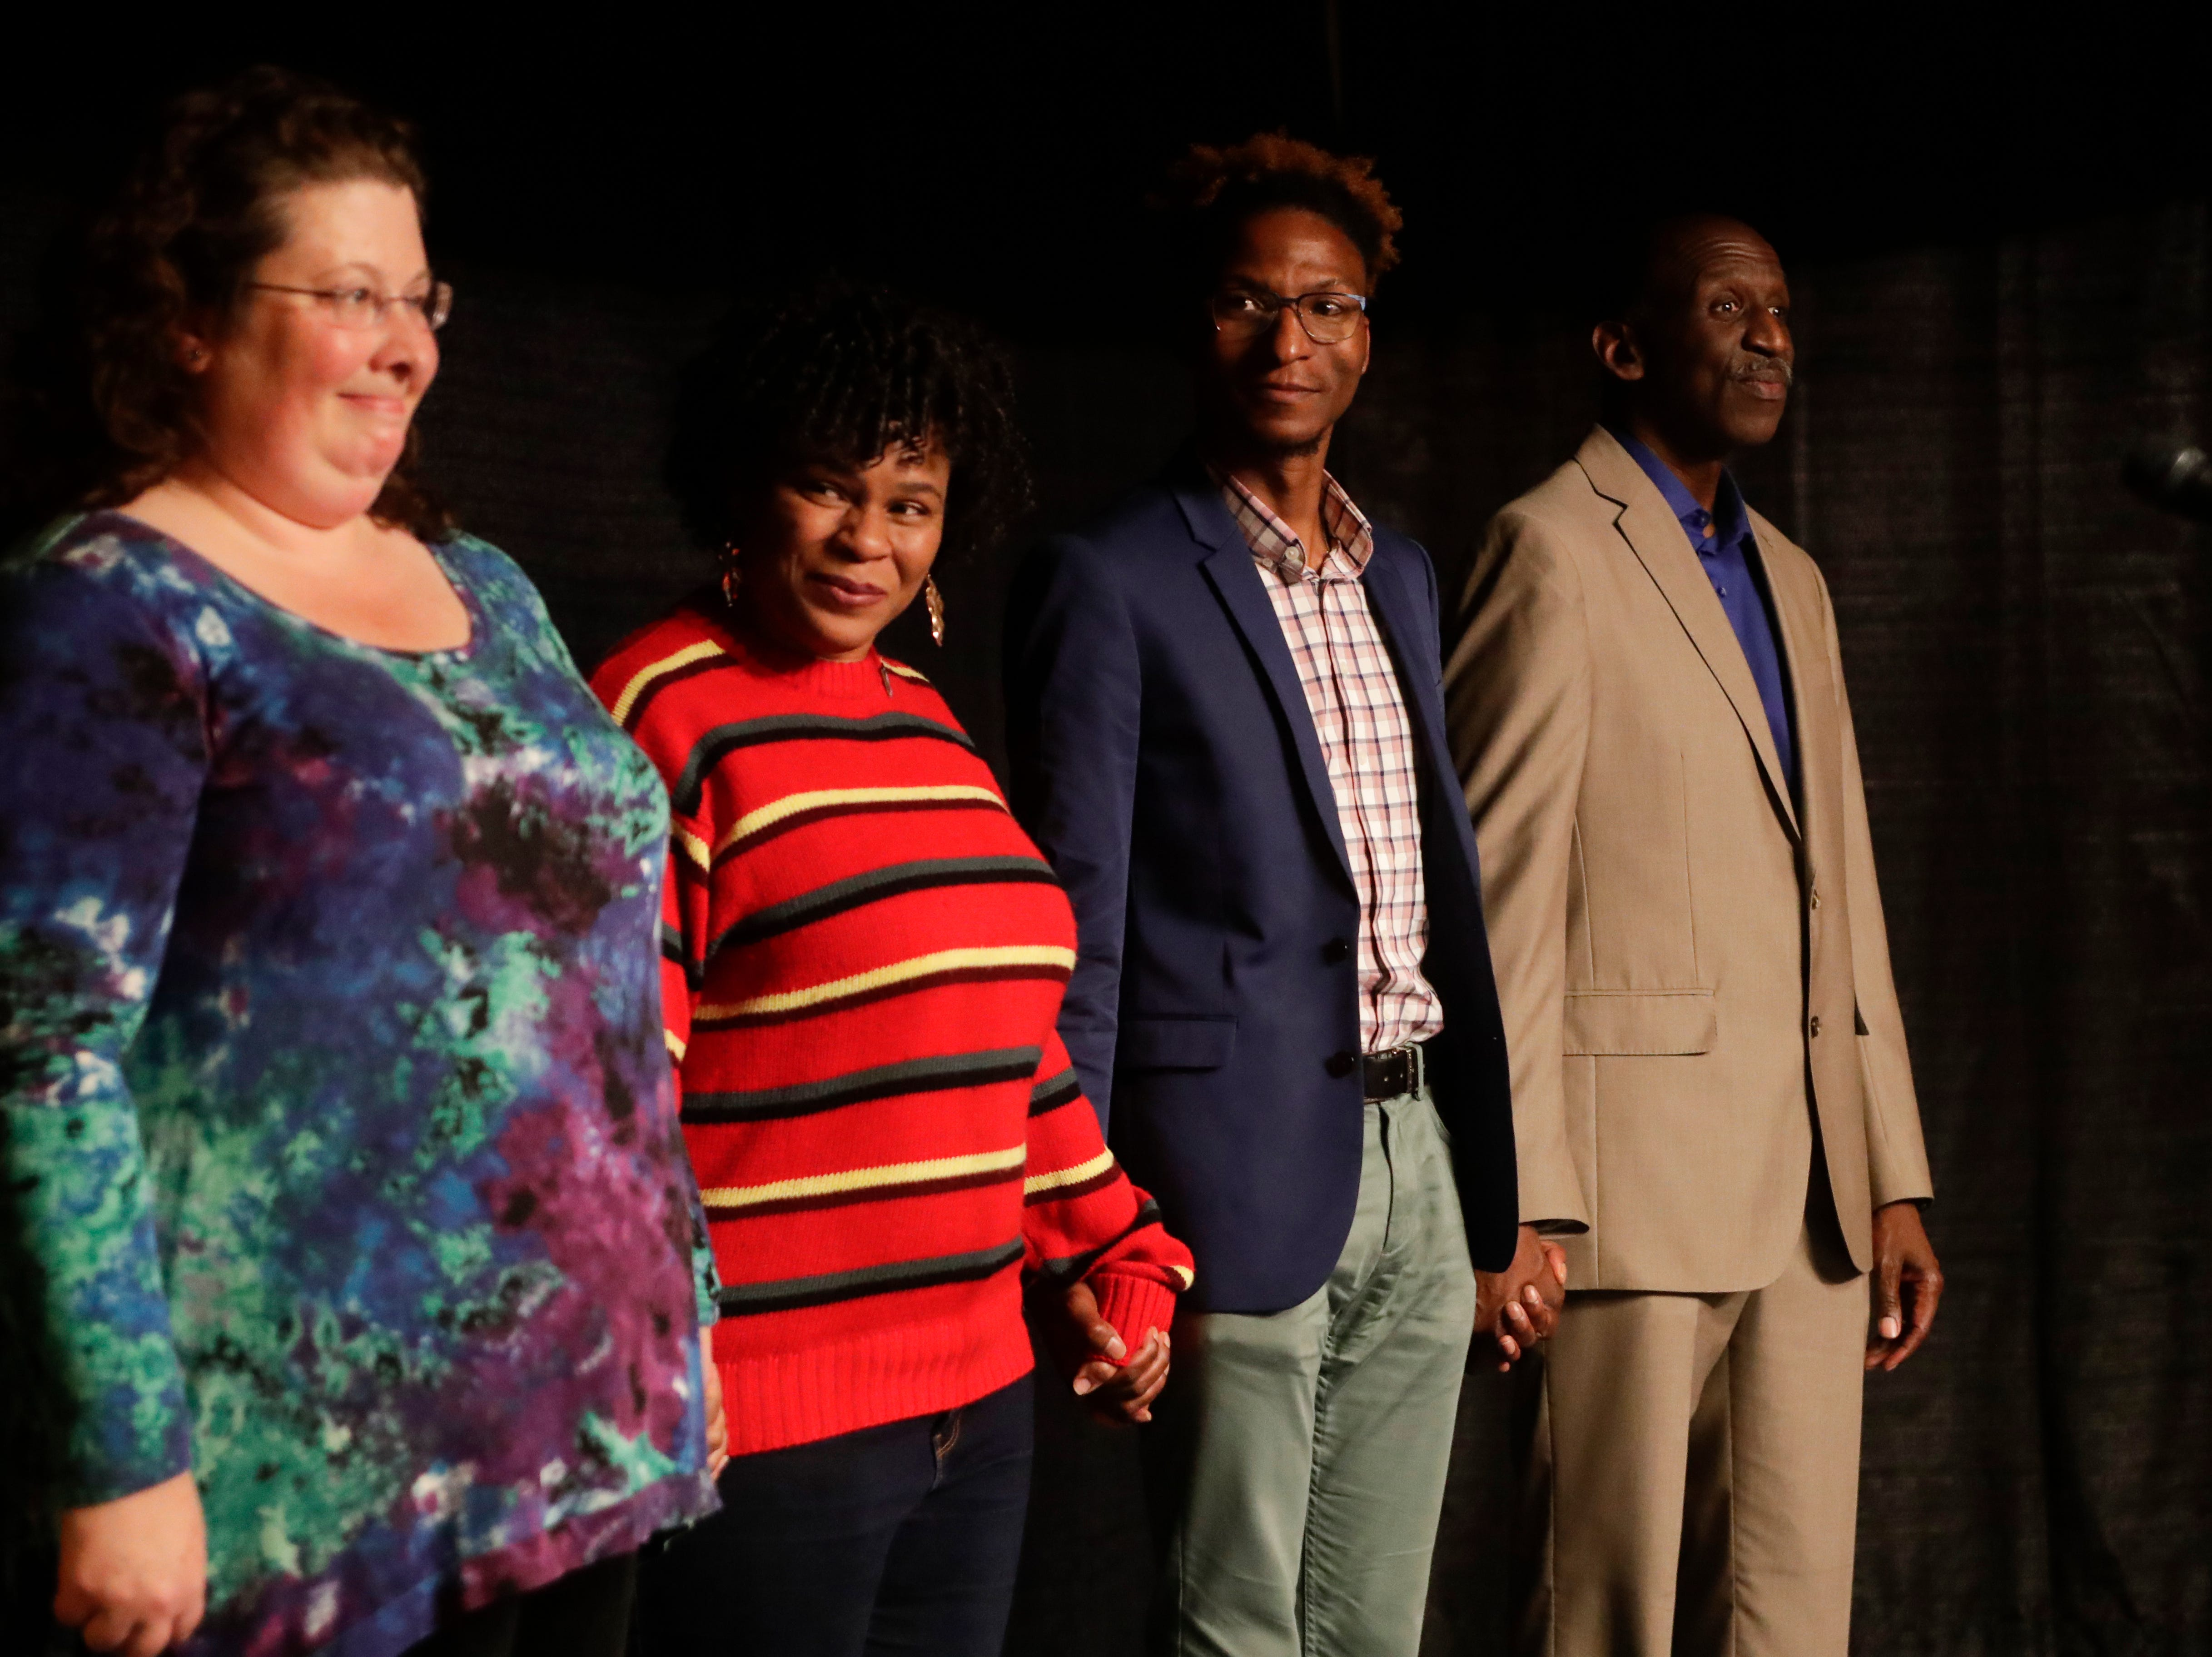 Love, dating, motherhood among themes for Tallahassee Storytellers Project  2019 events